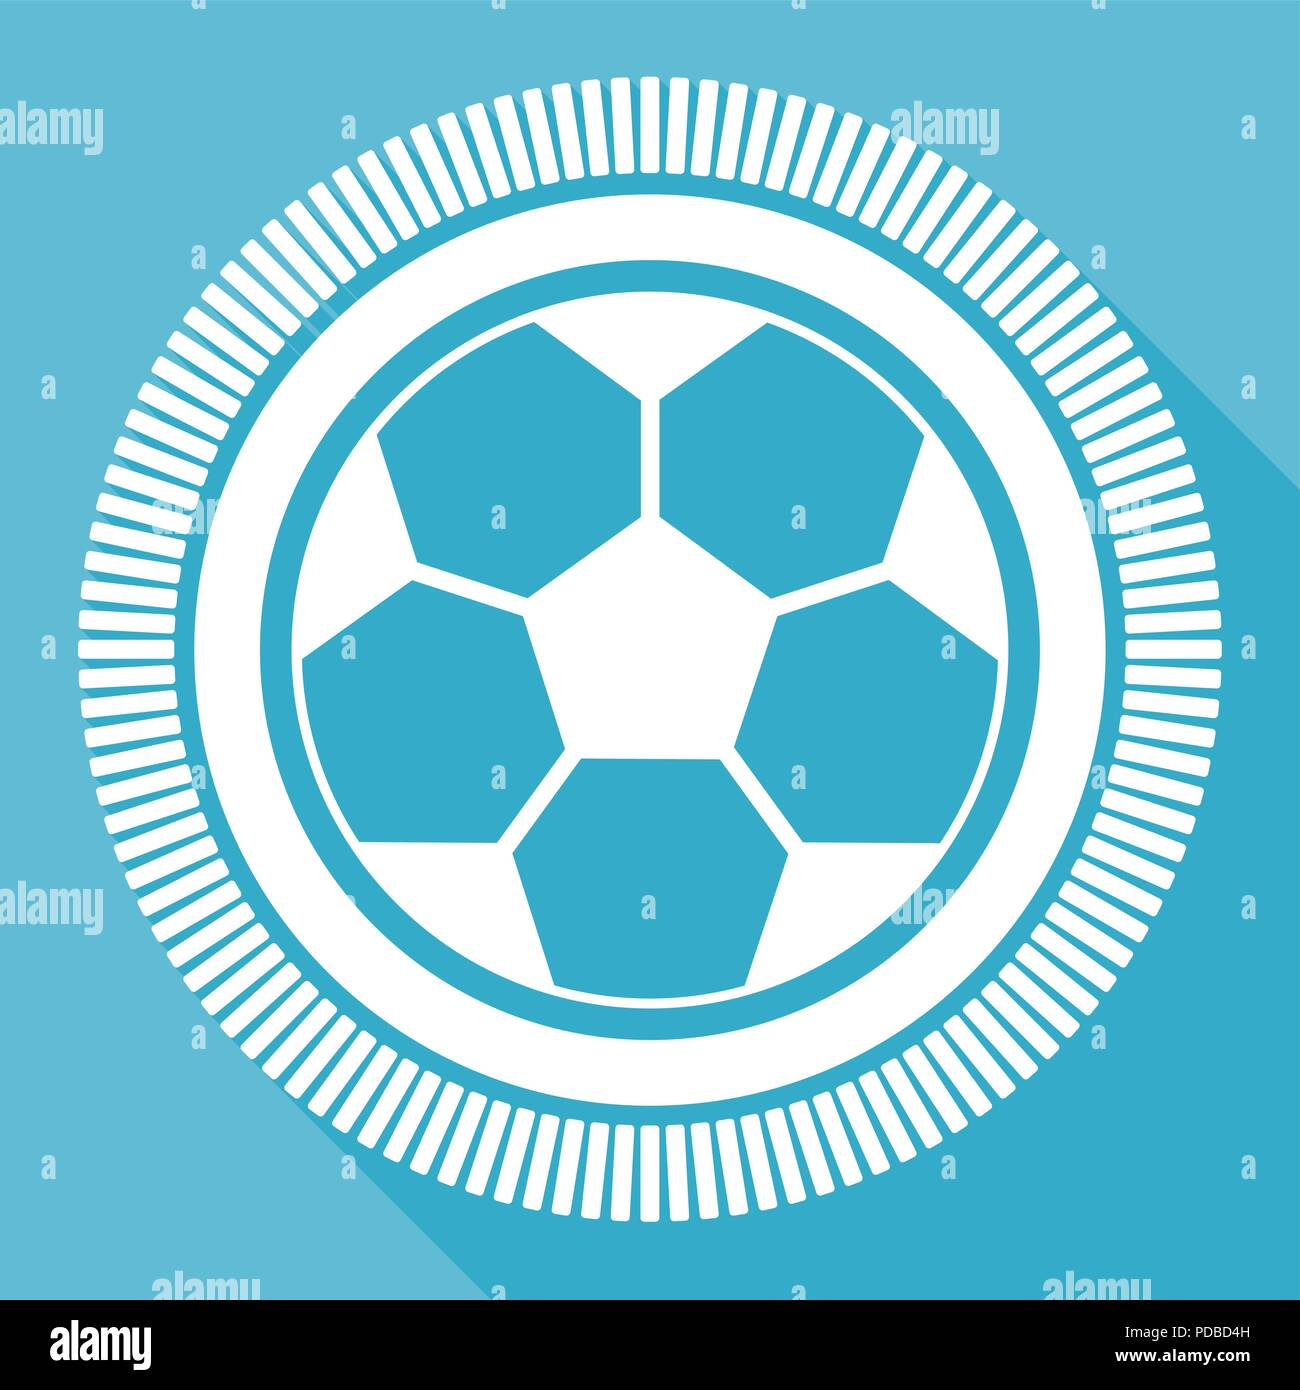 Soccer editable flat vector icon, football square web button, blue computer and smartphone application sign in eps 10 - Stock Vector